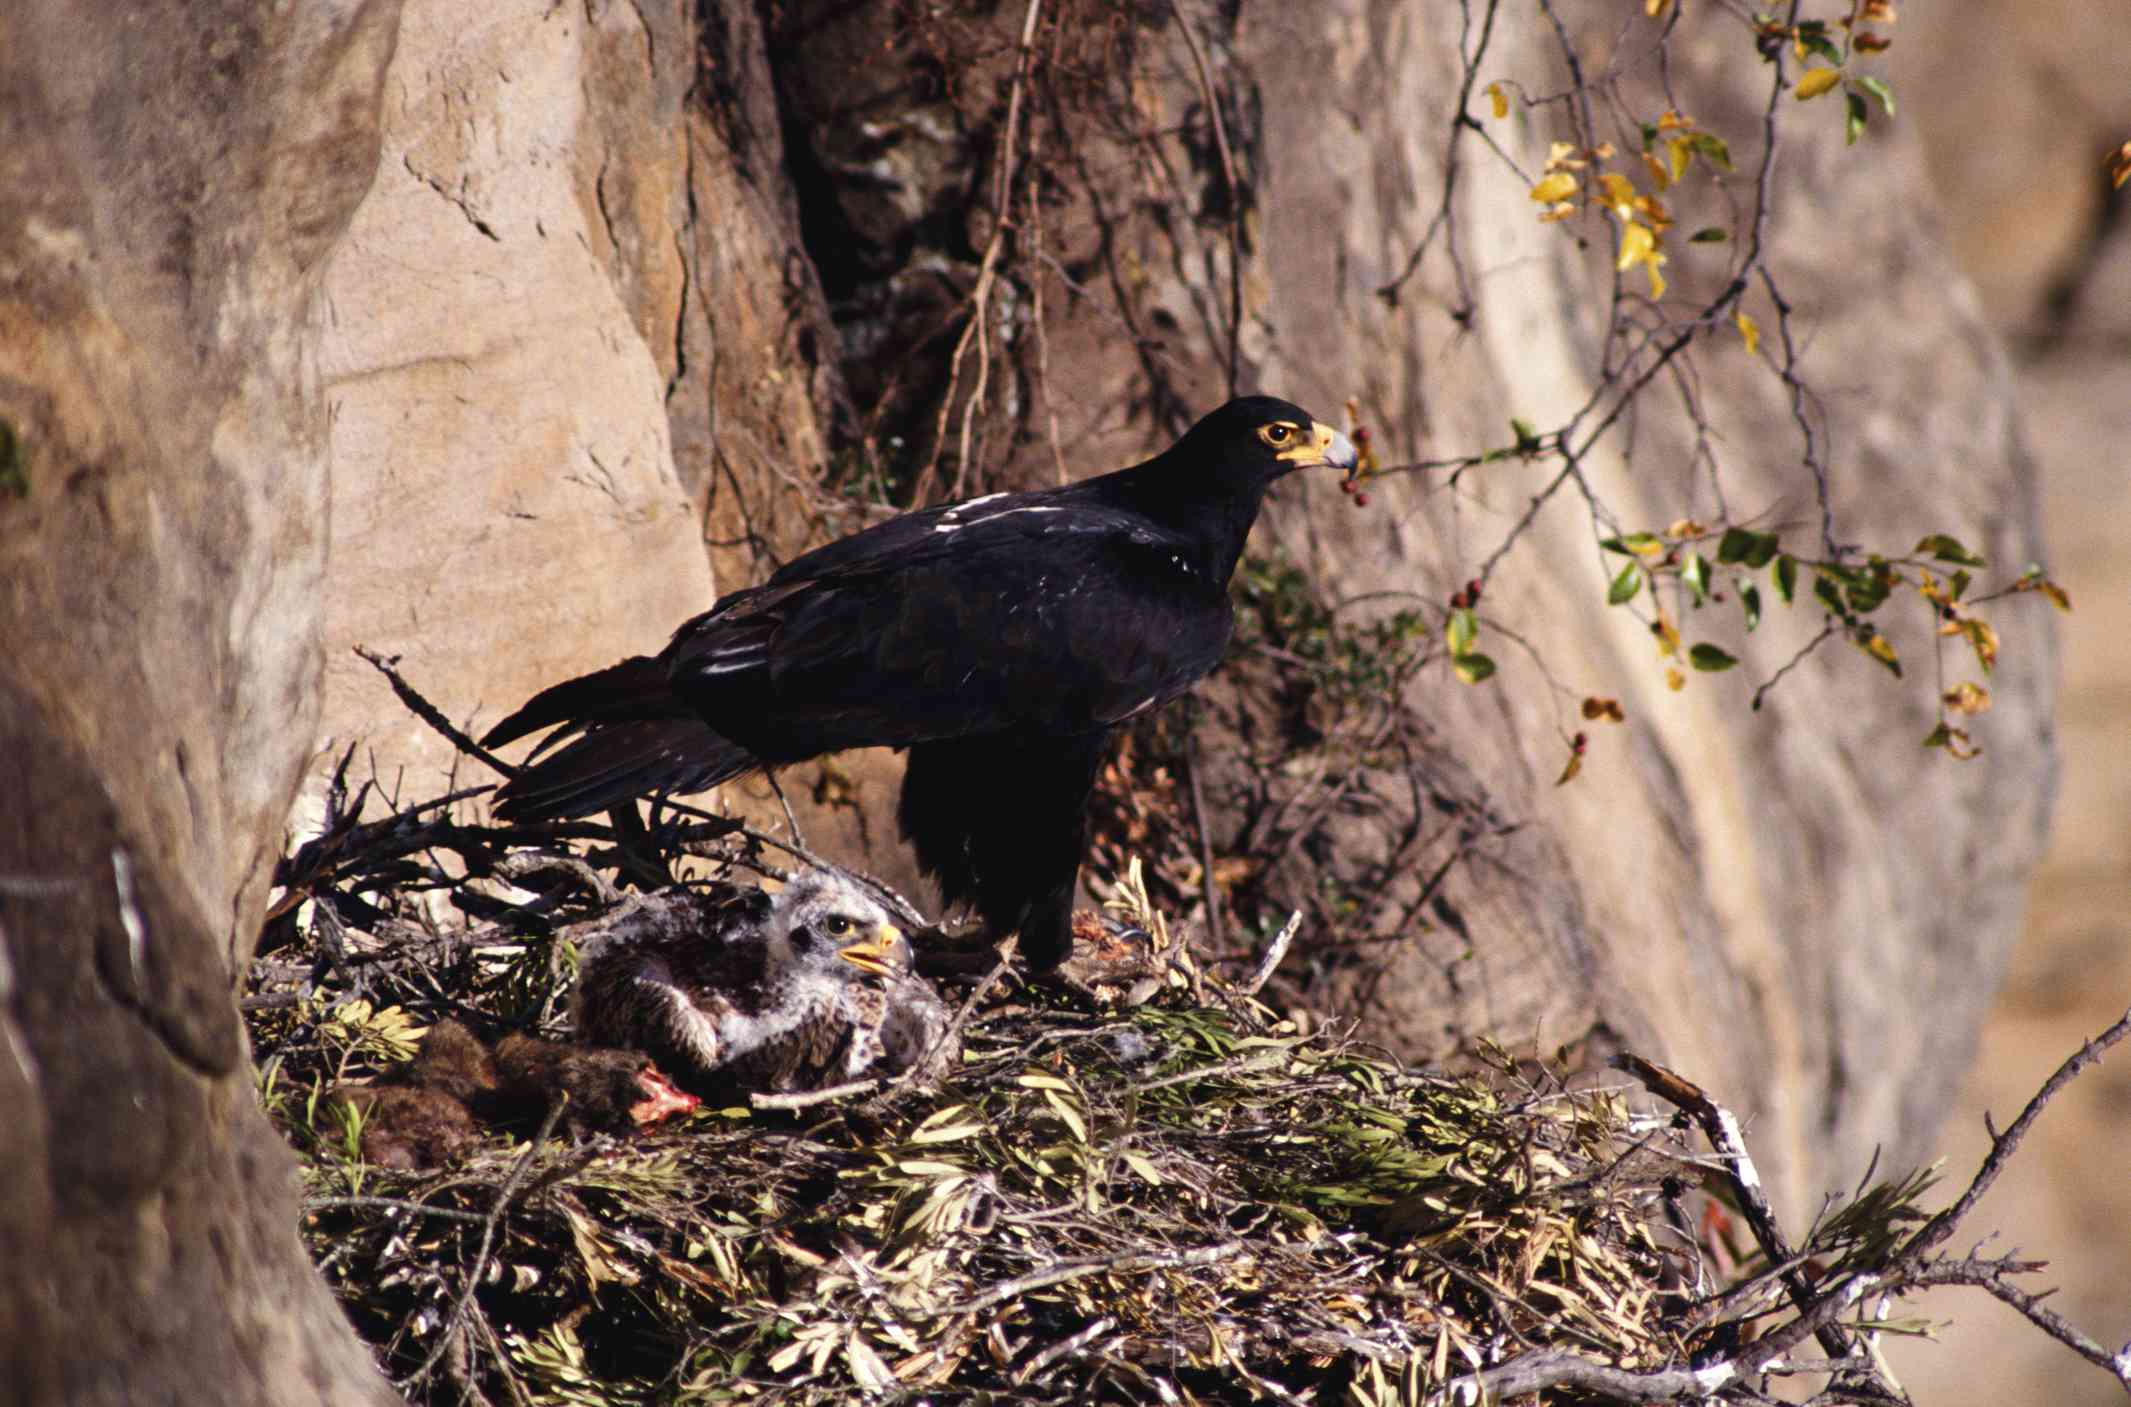 Nesting Verreaux's eagle and chick, South Africa